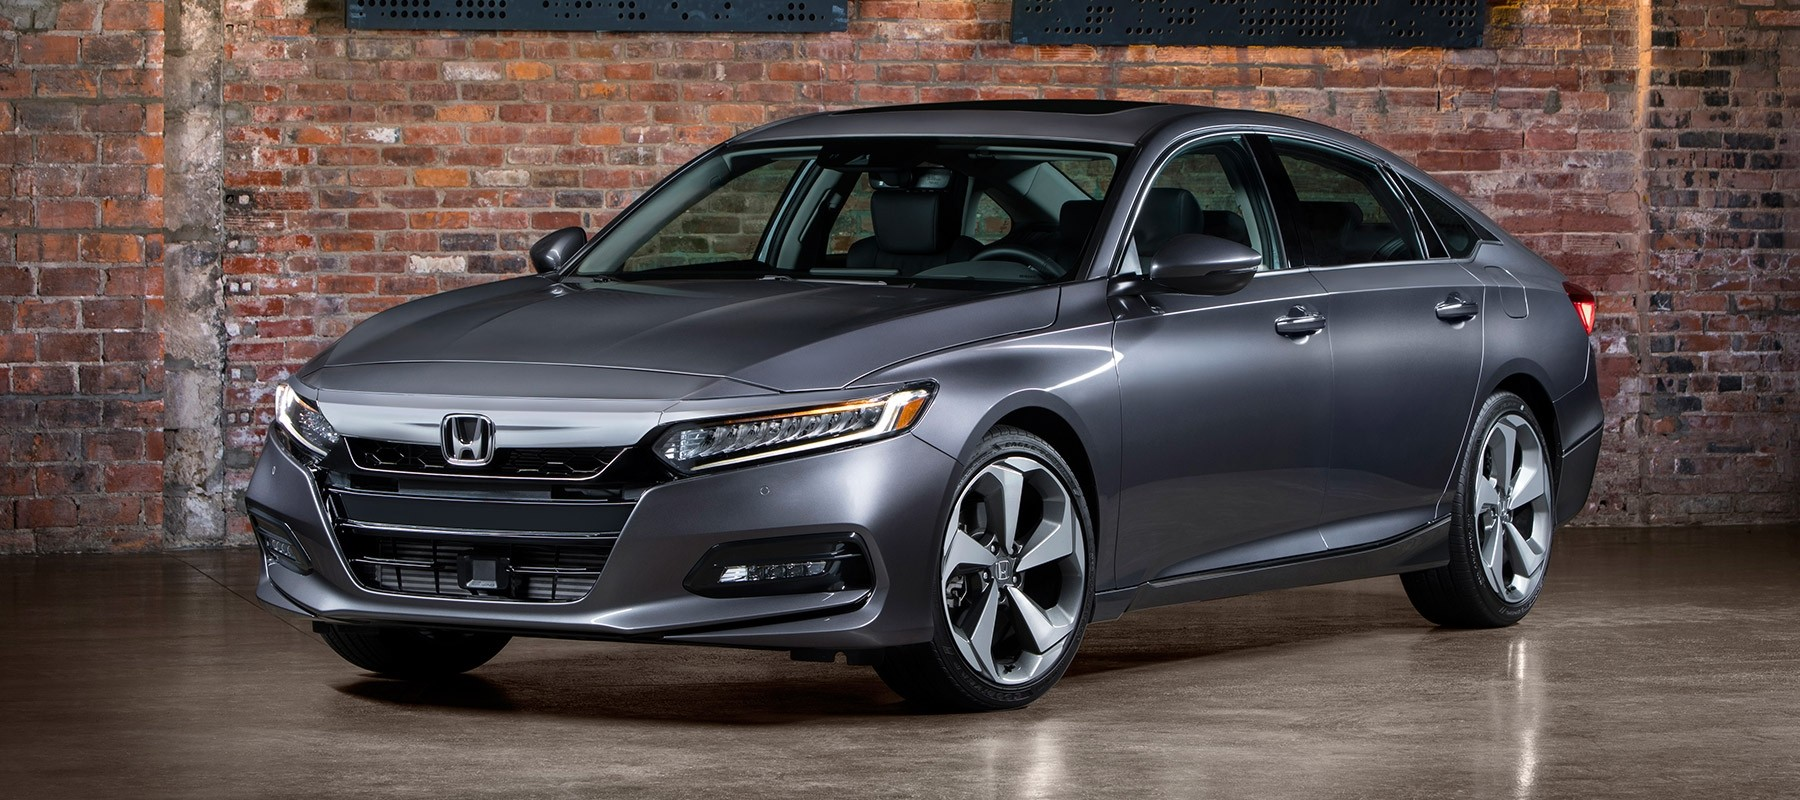 Image Result For Honda Accord Lease Incentives